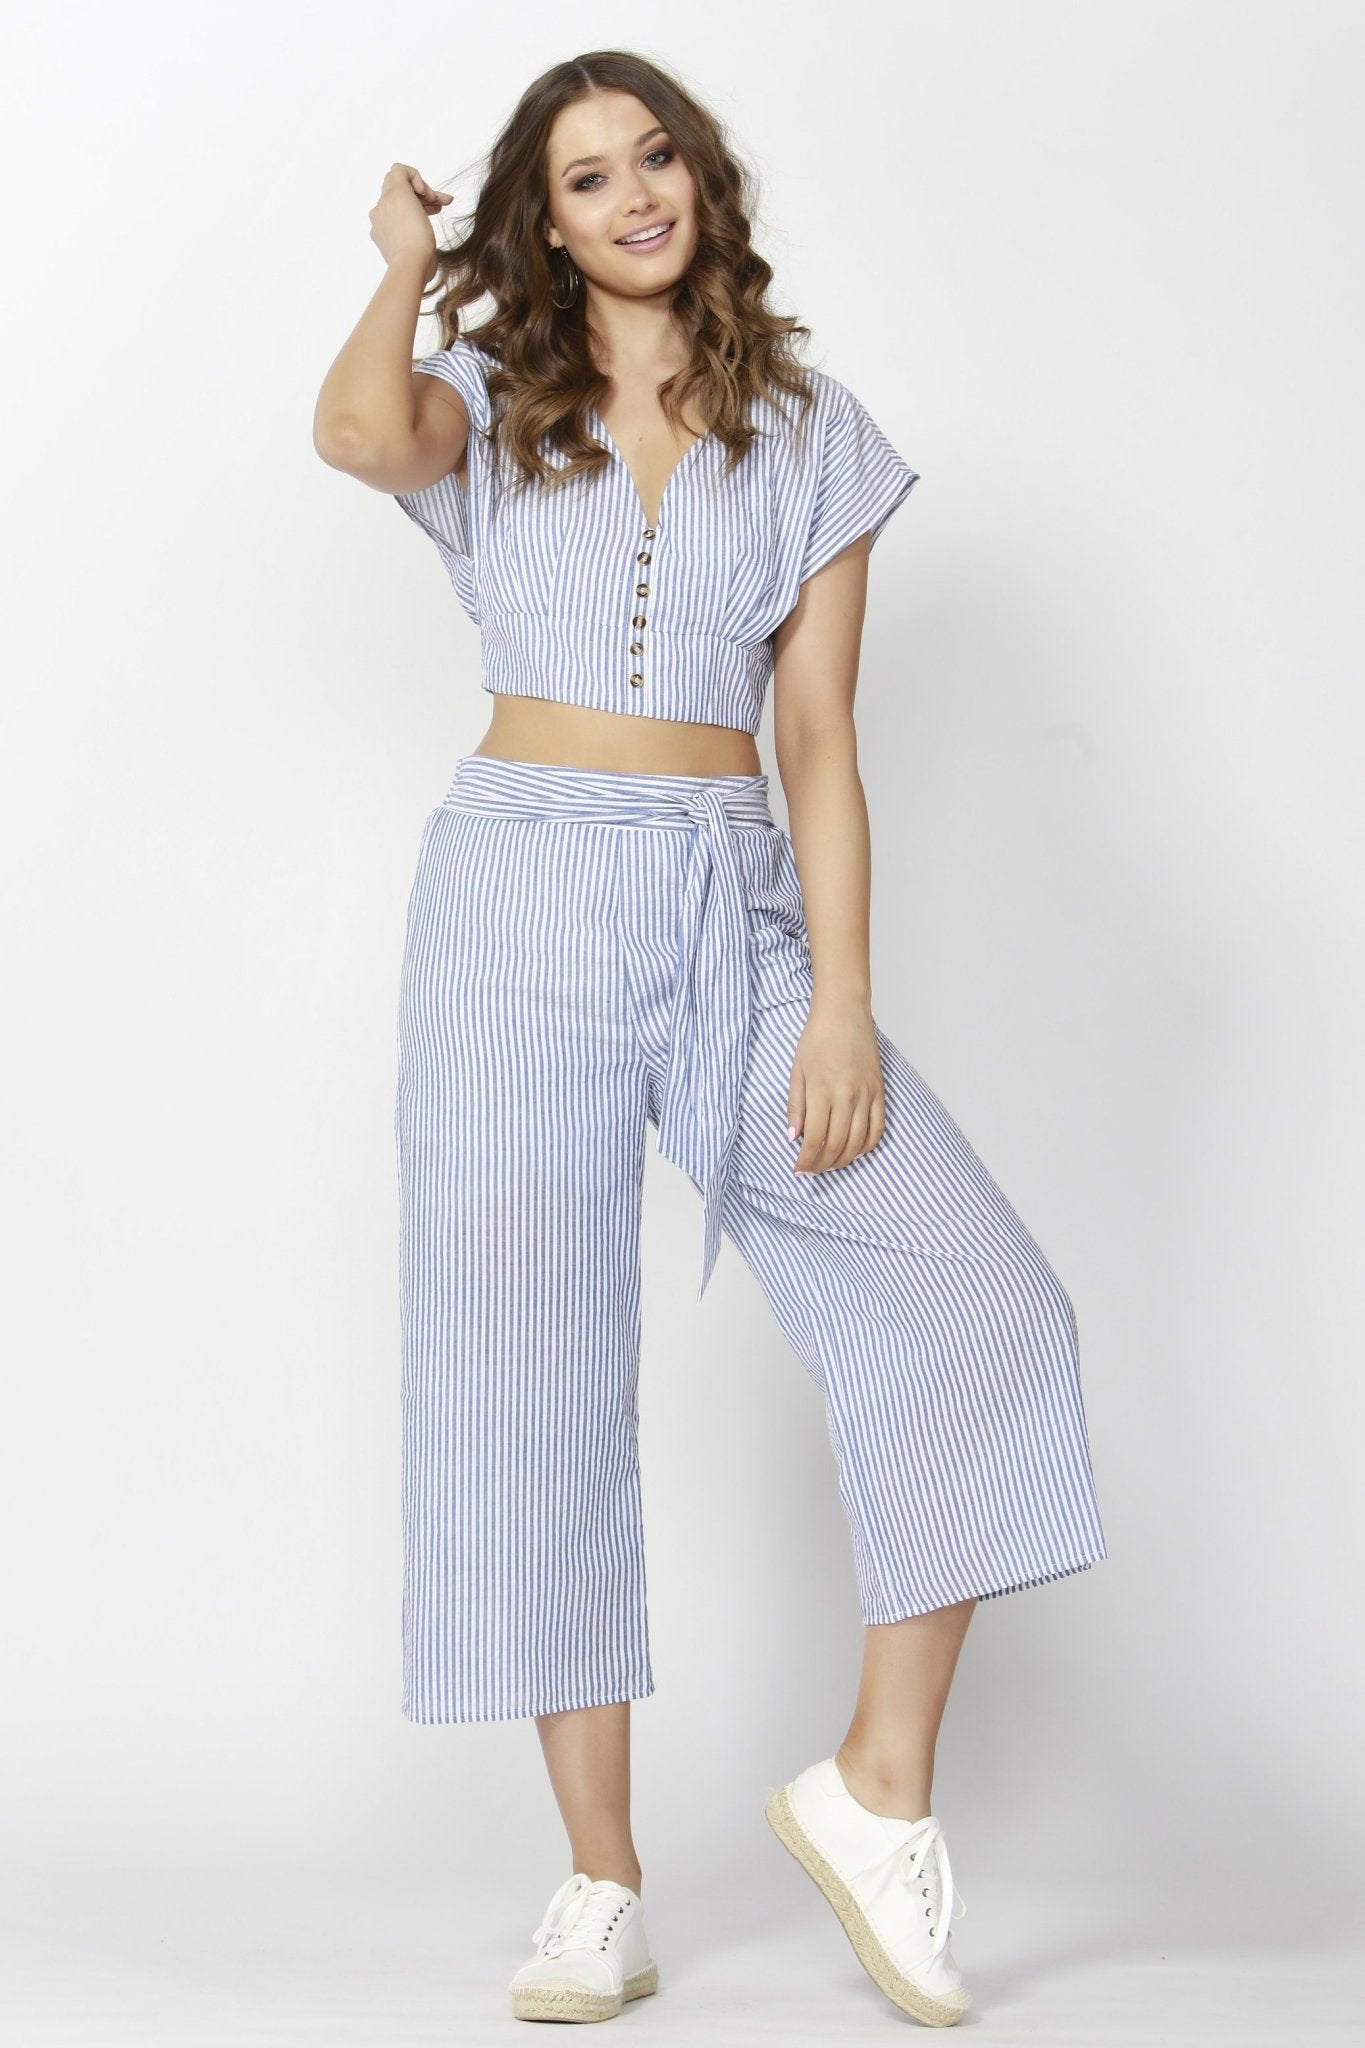 Sass Stripe Out Tie Pant - Blue / White Stripe - Hey Sara